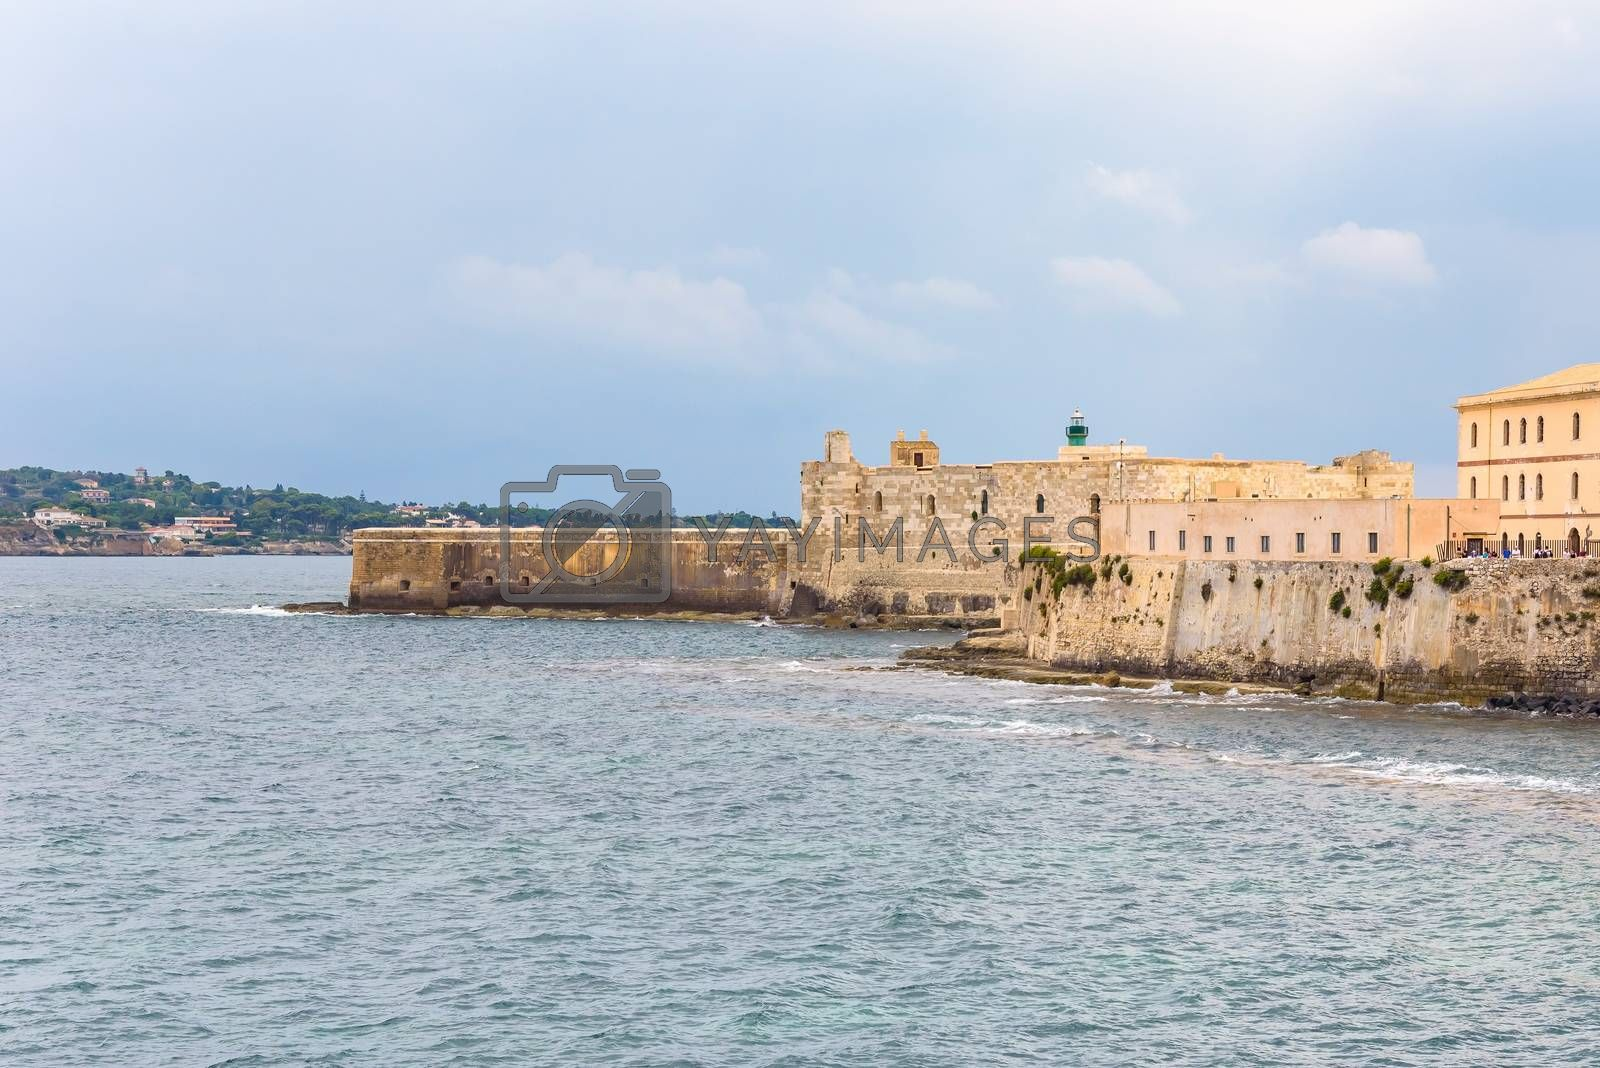 Waterfront with Maniace Castle on Ortygia Island in Syracuse, Sicily, Italy